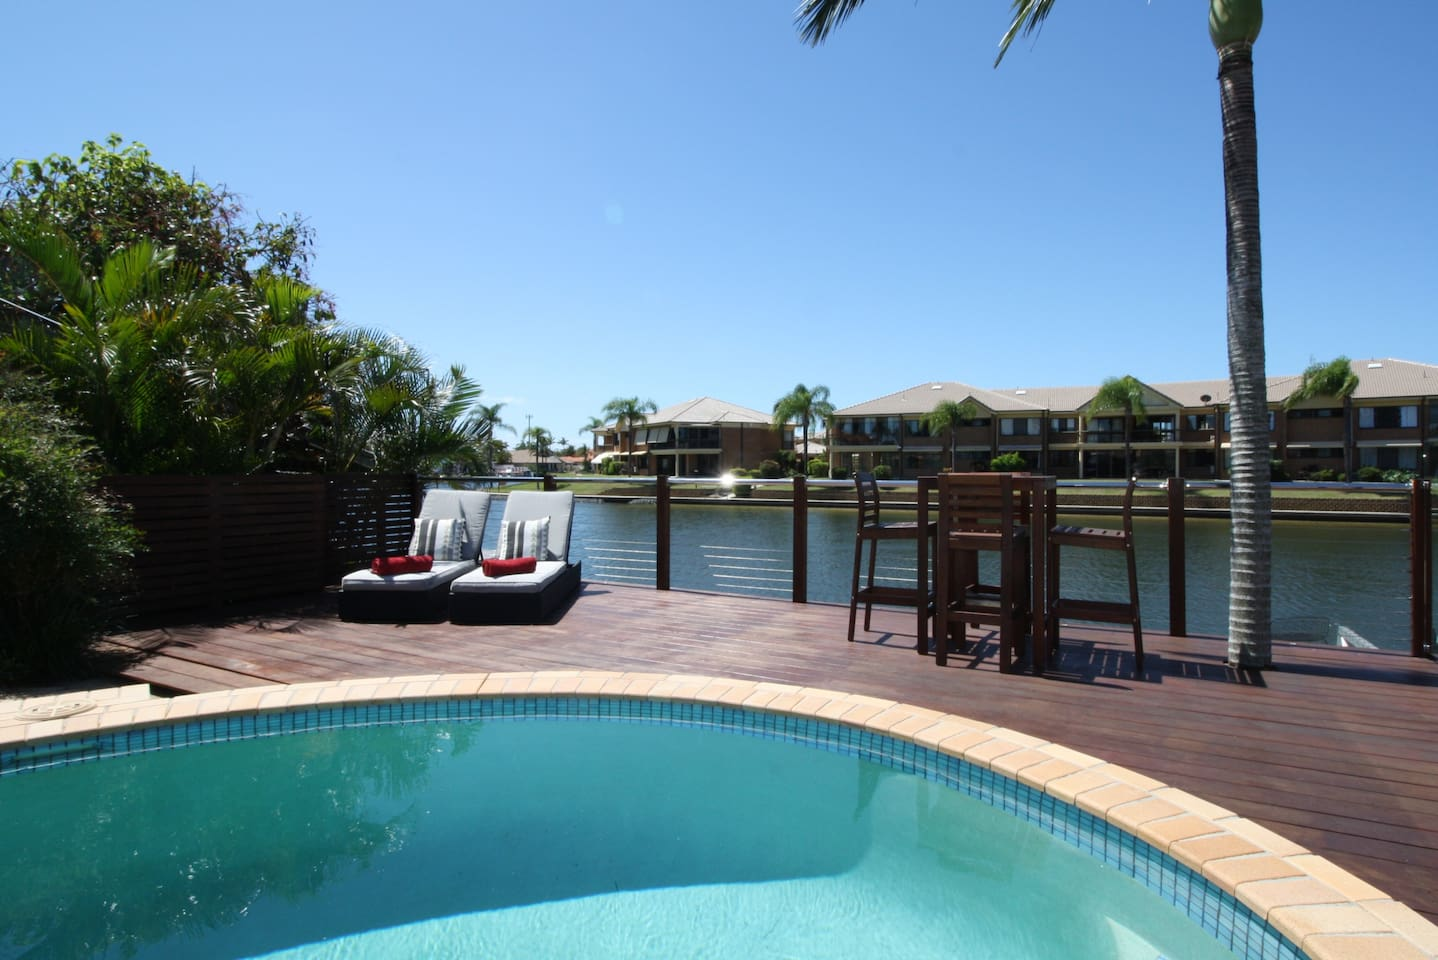 Relax by the refreshing pool overlooking the canal.